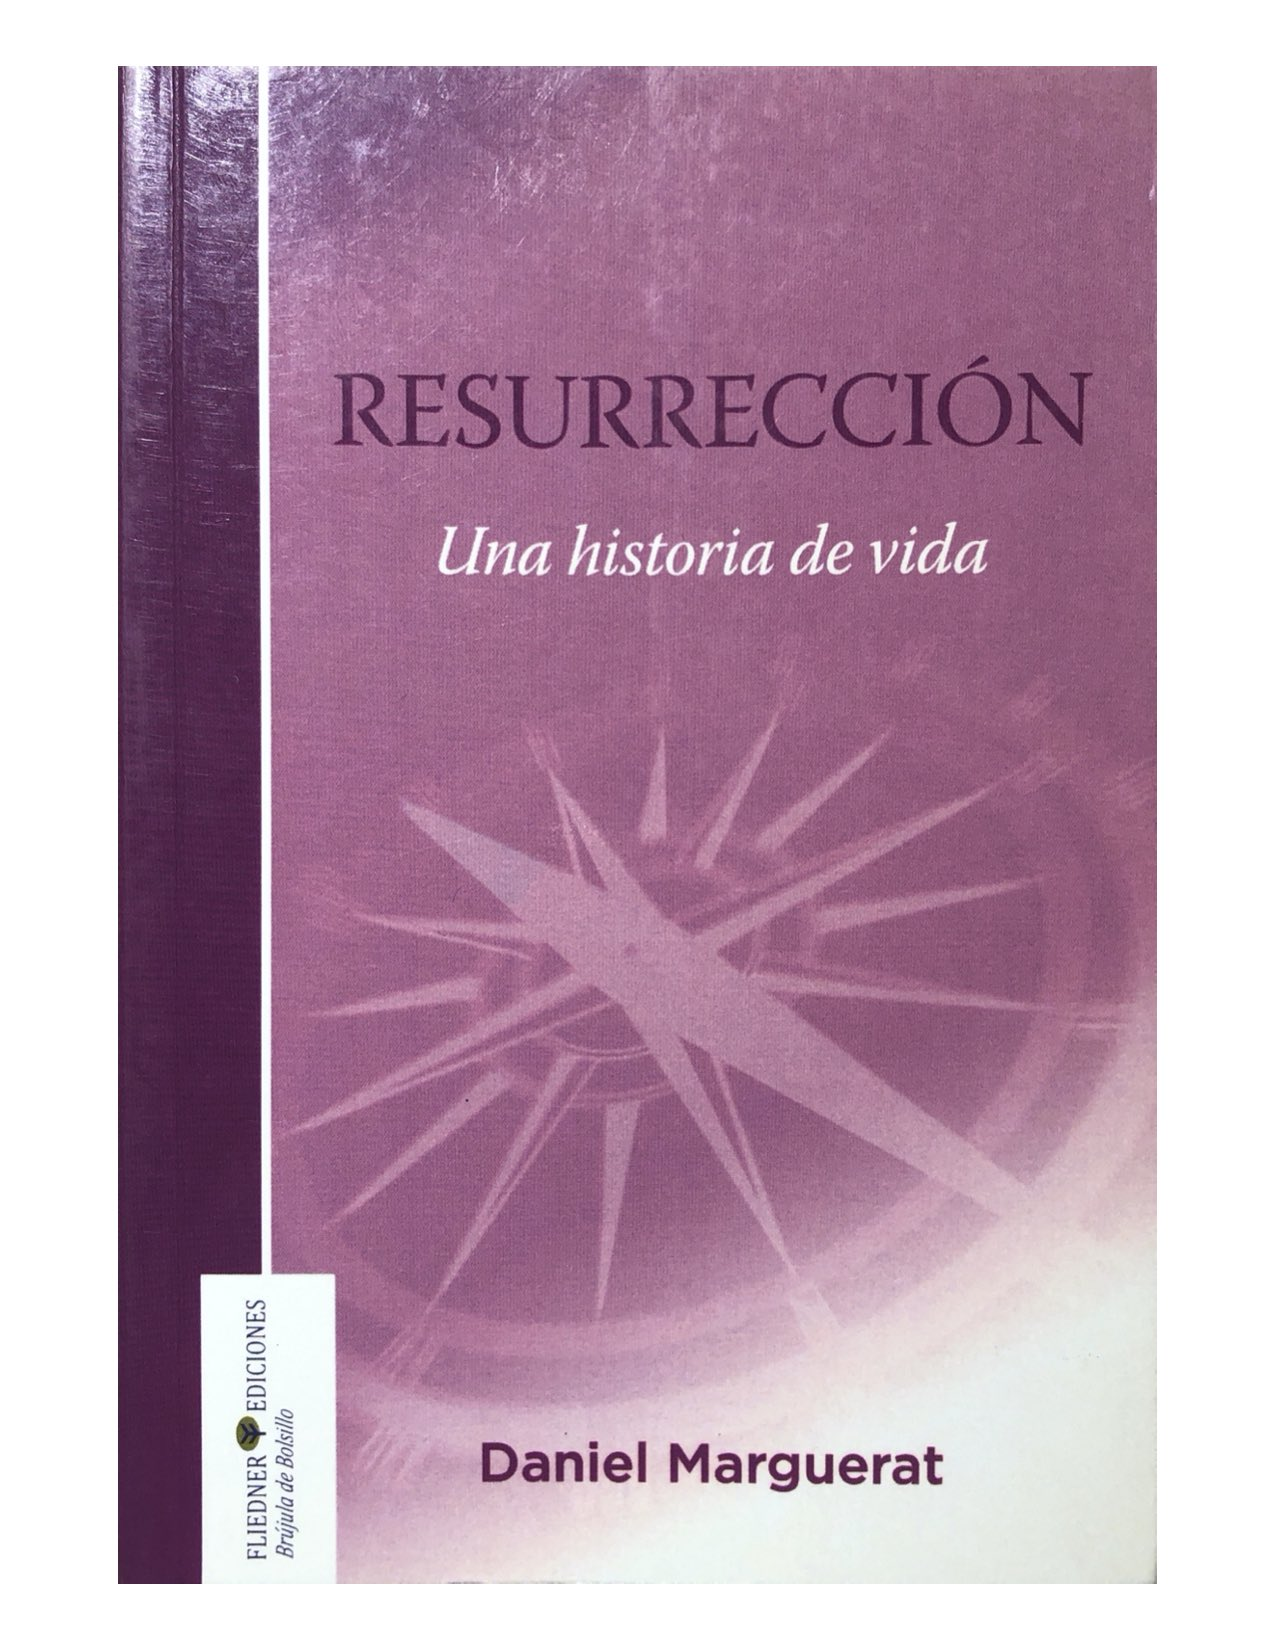 RESURRECCION